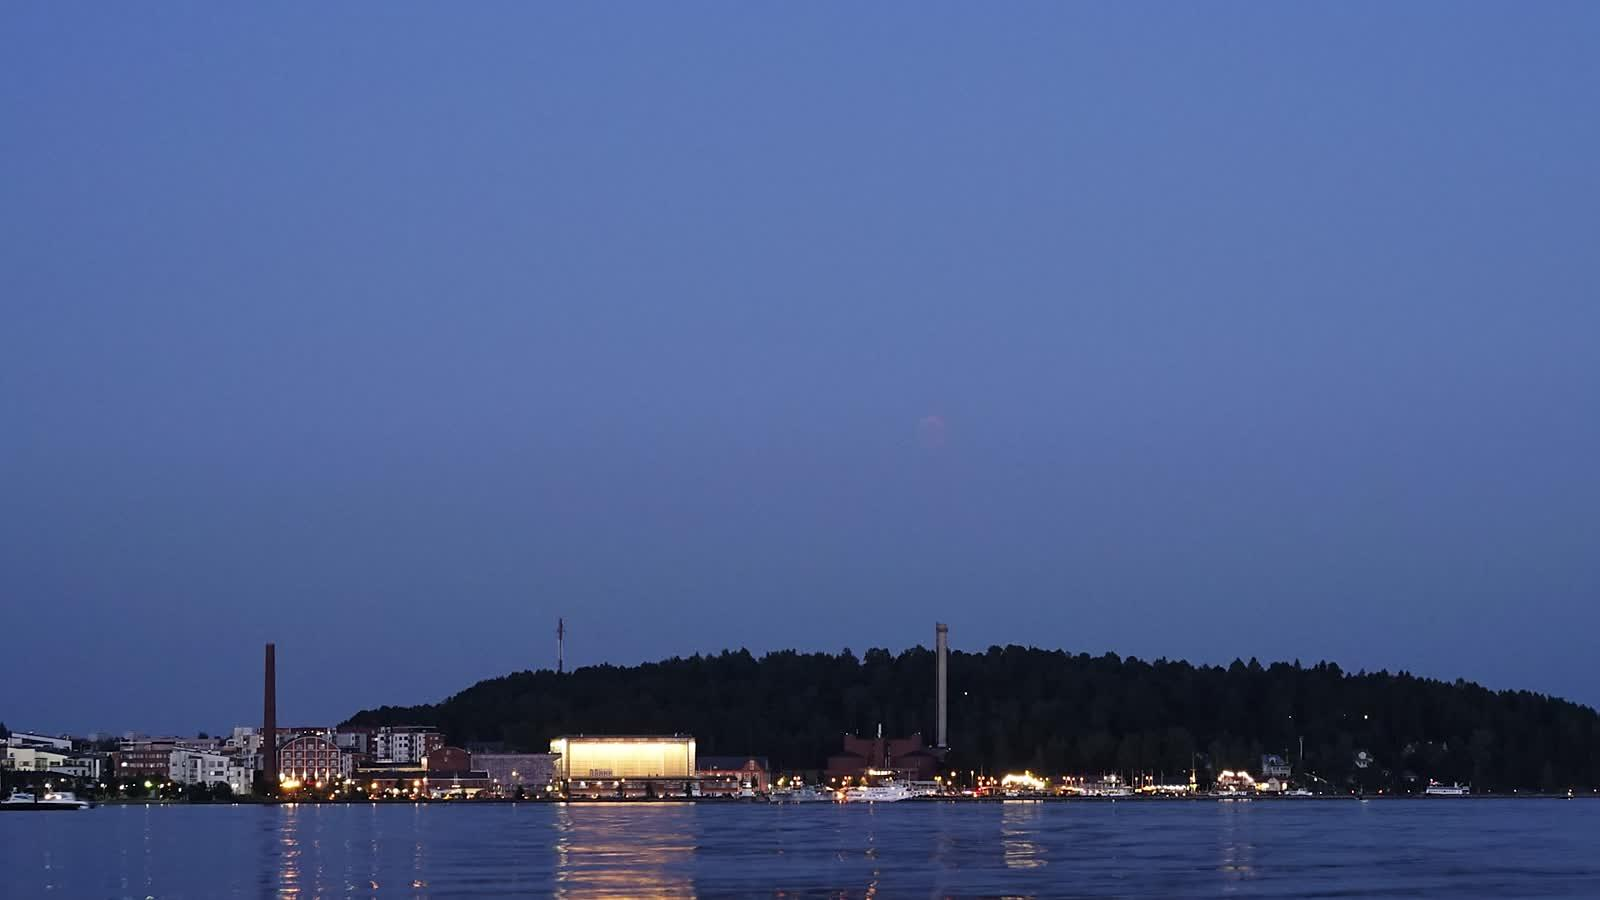 TImelapse of Lunar eclipse above Lahti on Jul 27 2018.